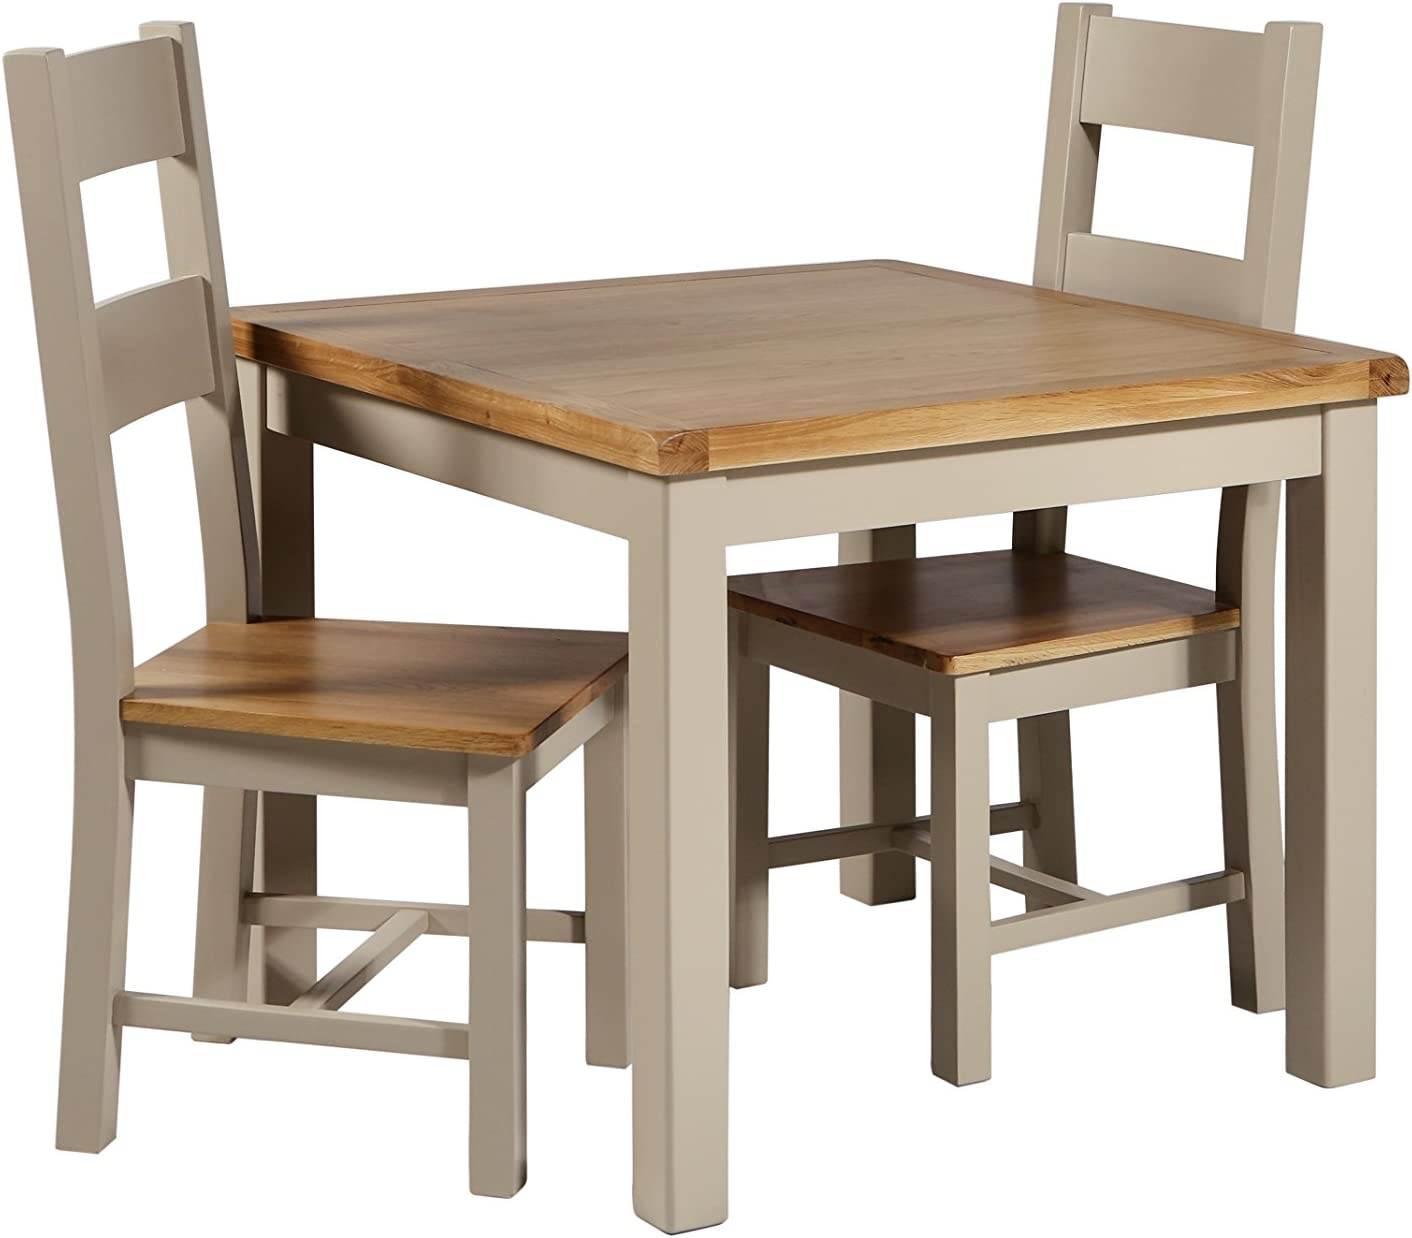 Melbourne Living Truffle Oak Dining Table Painted Oak Dining Room Table Traditional Solid Oak Furniture Amazon Co Uk Kitchen Home